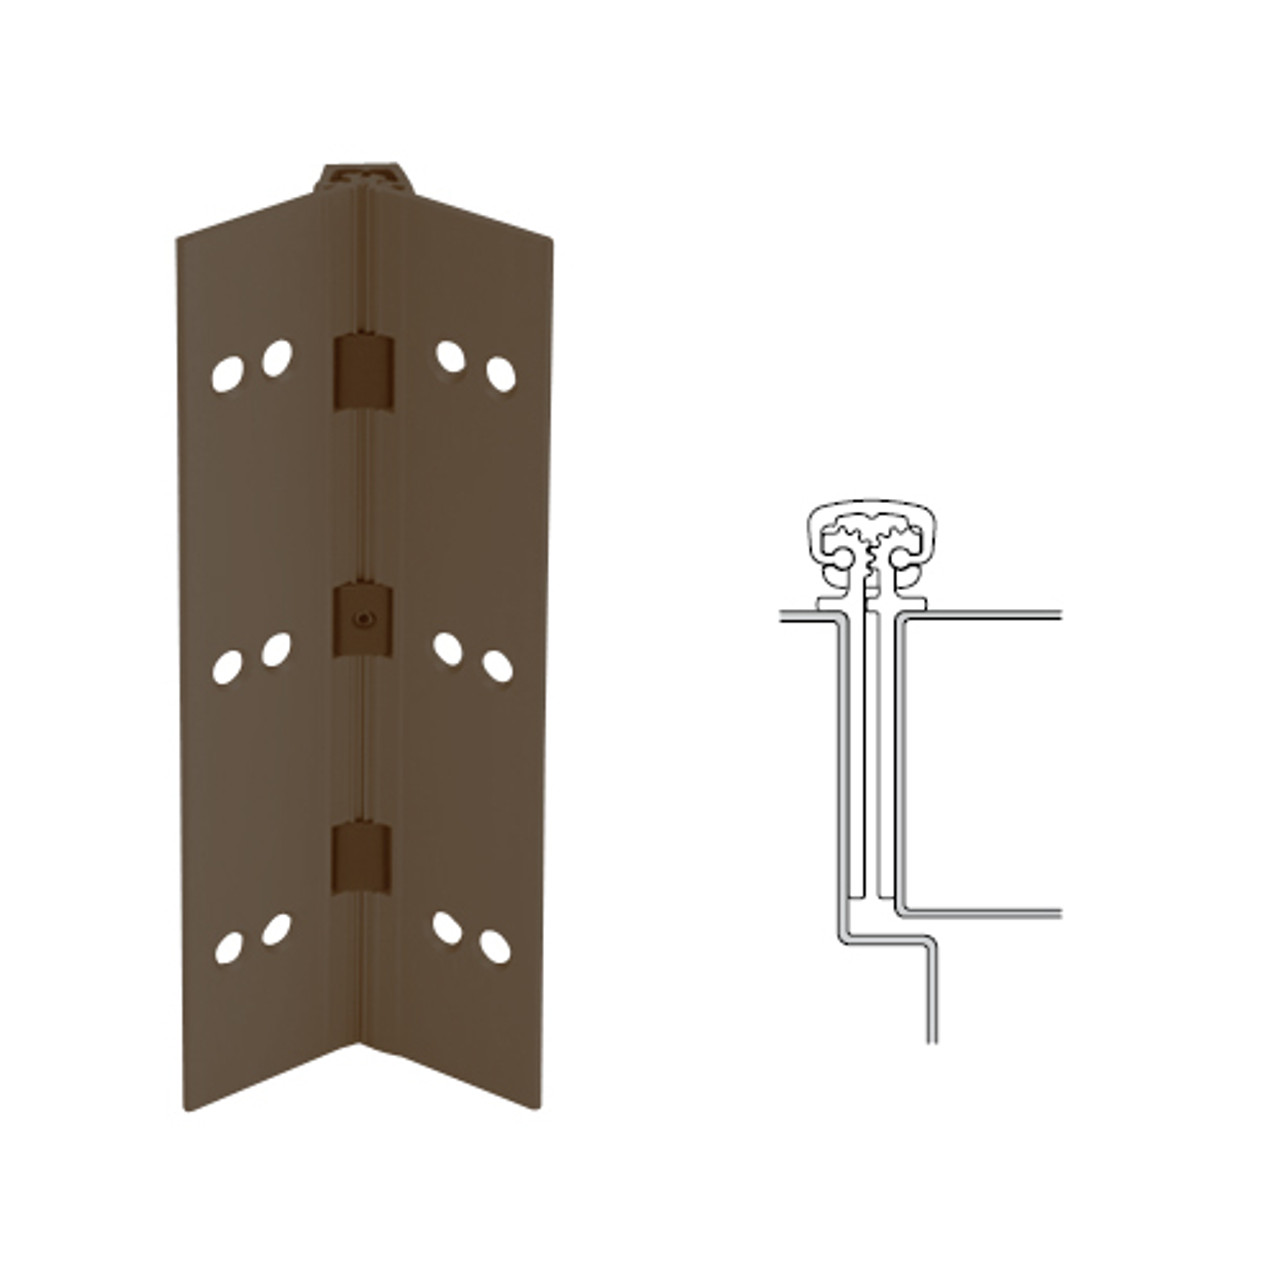 027XY-313AN-120-TEKWD IVES Full Mortise Continuous Geared Hinges with Wood Screws in Dark Bronze Anodized